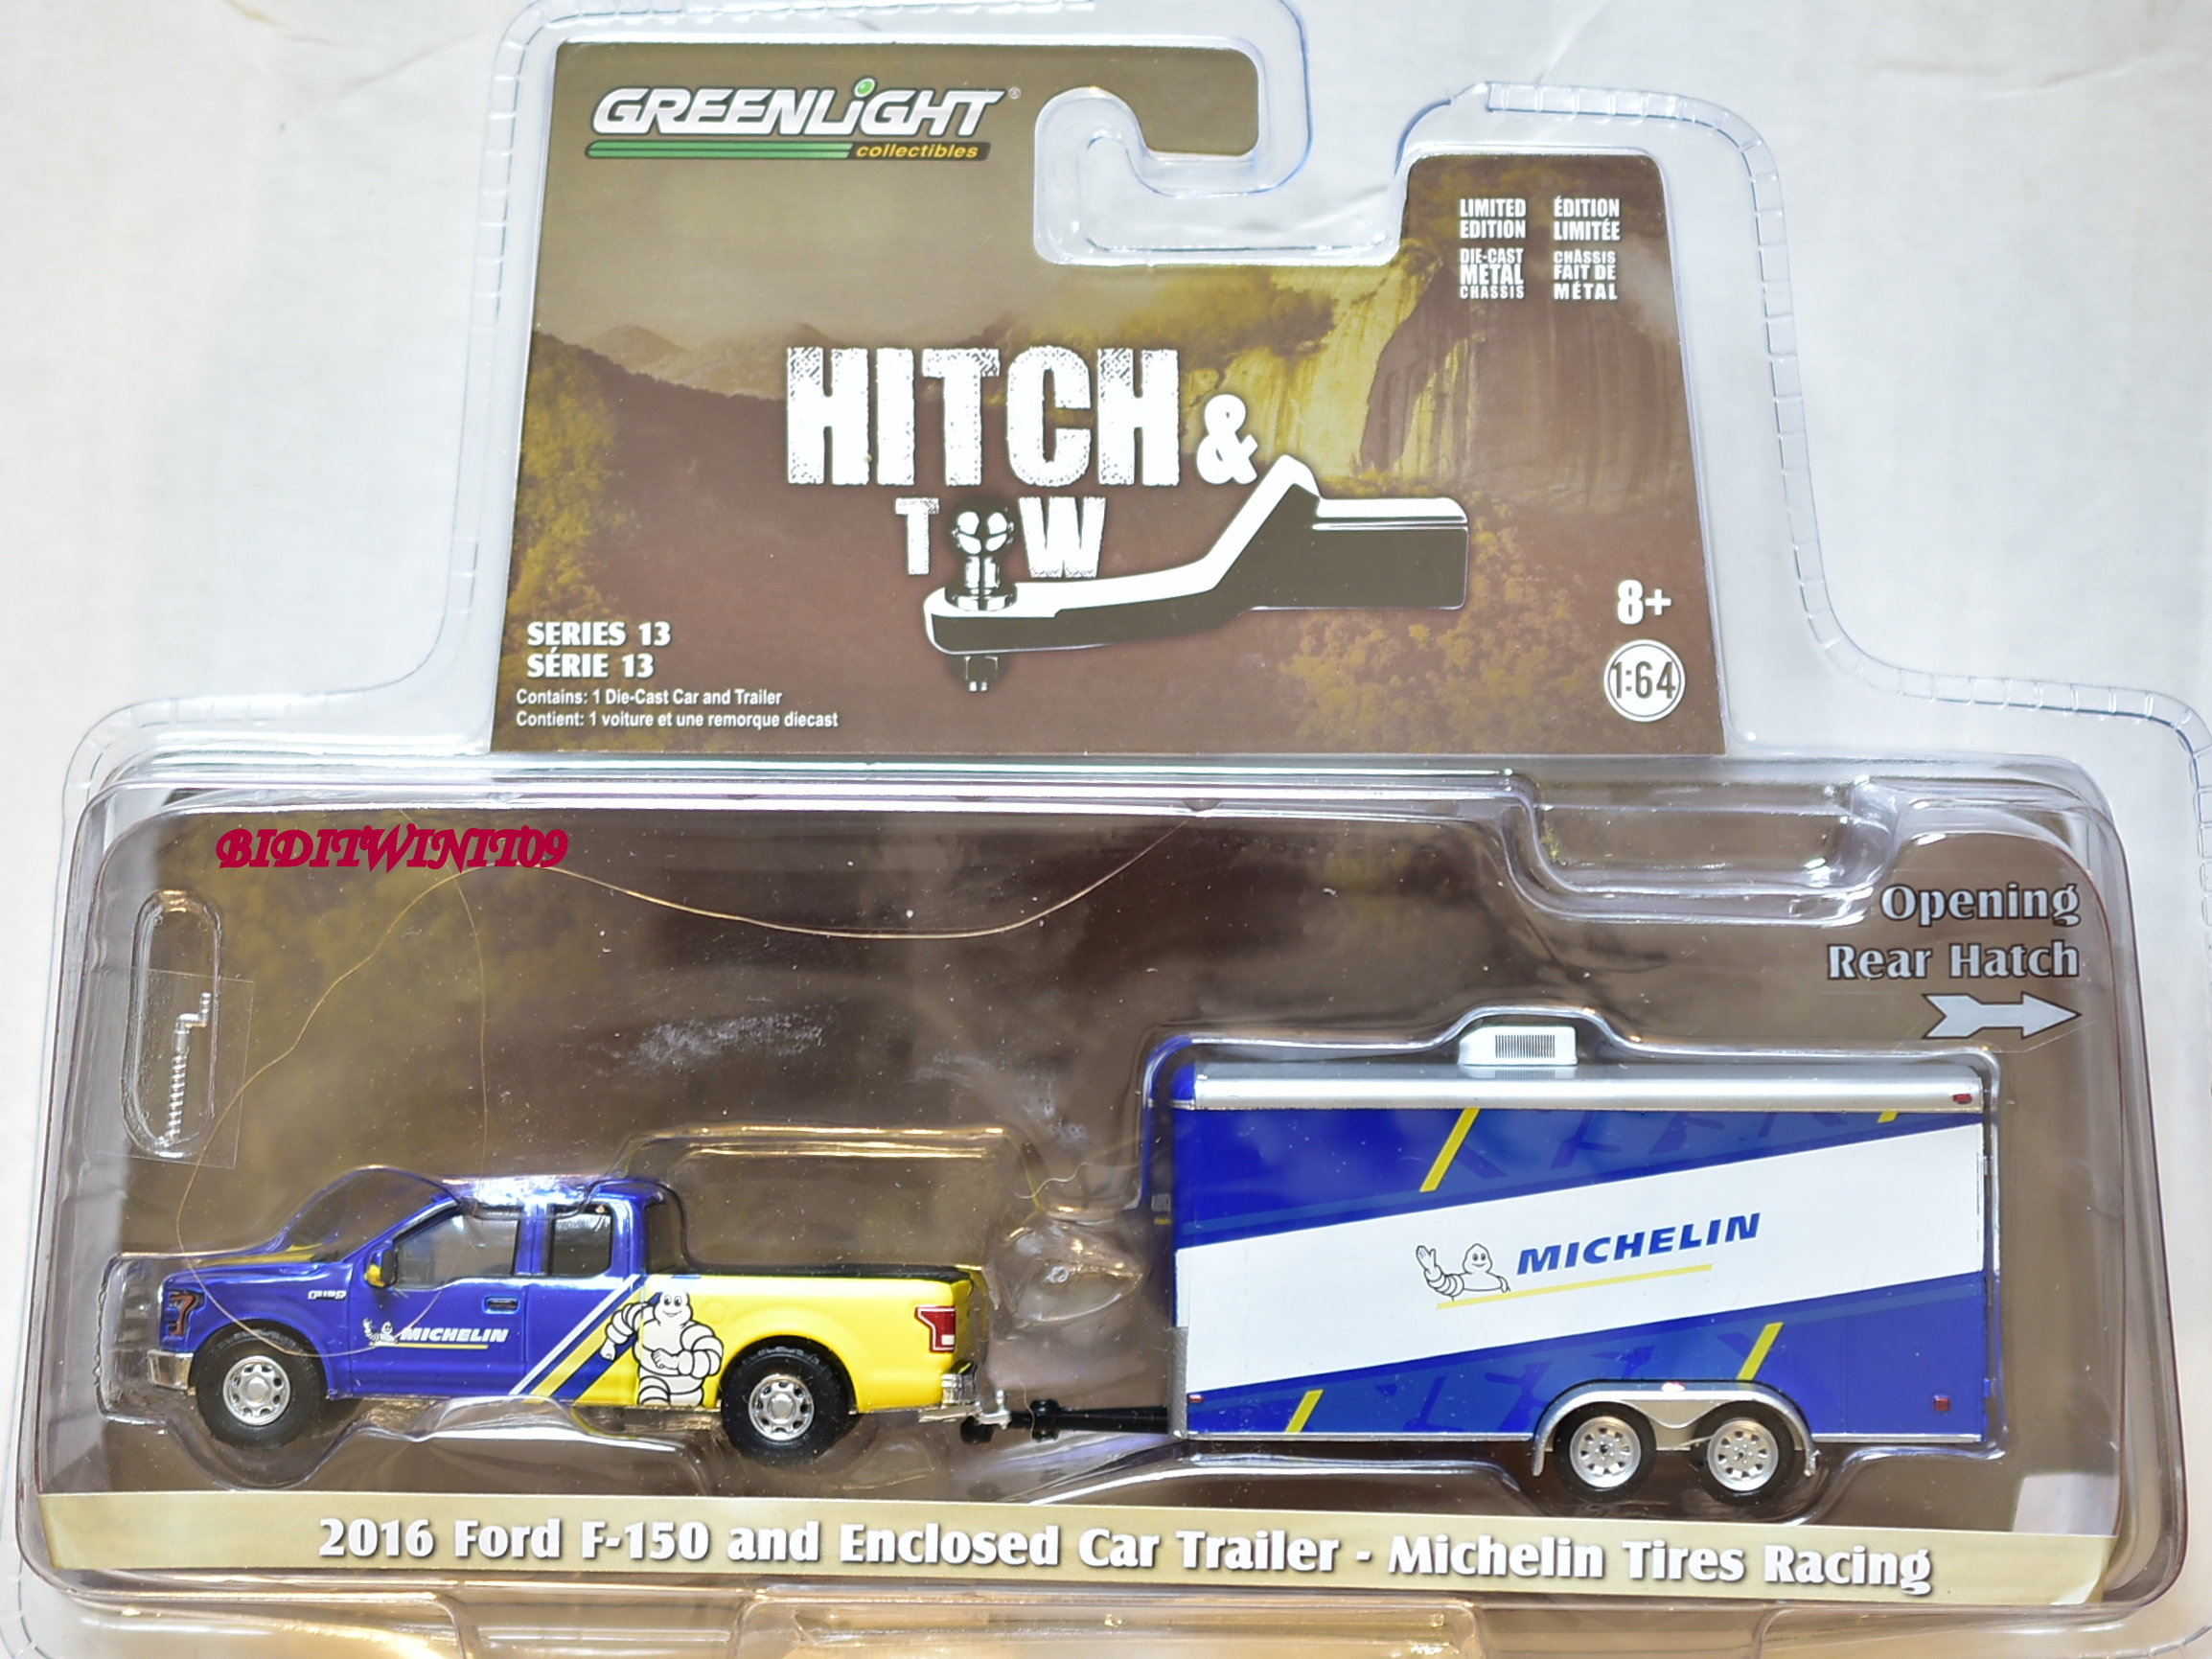 GREENLIGHT 2016 FORD F-150 AND ENCLOED CAR TRAILER - MICHELIN TIRES RACING